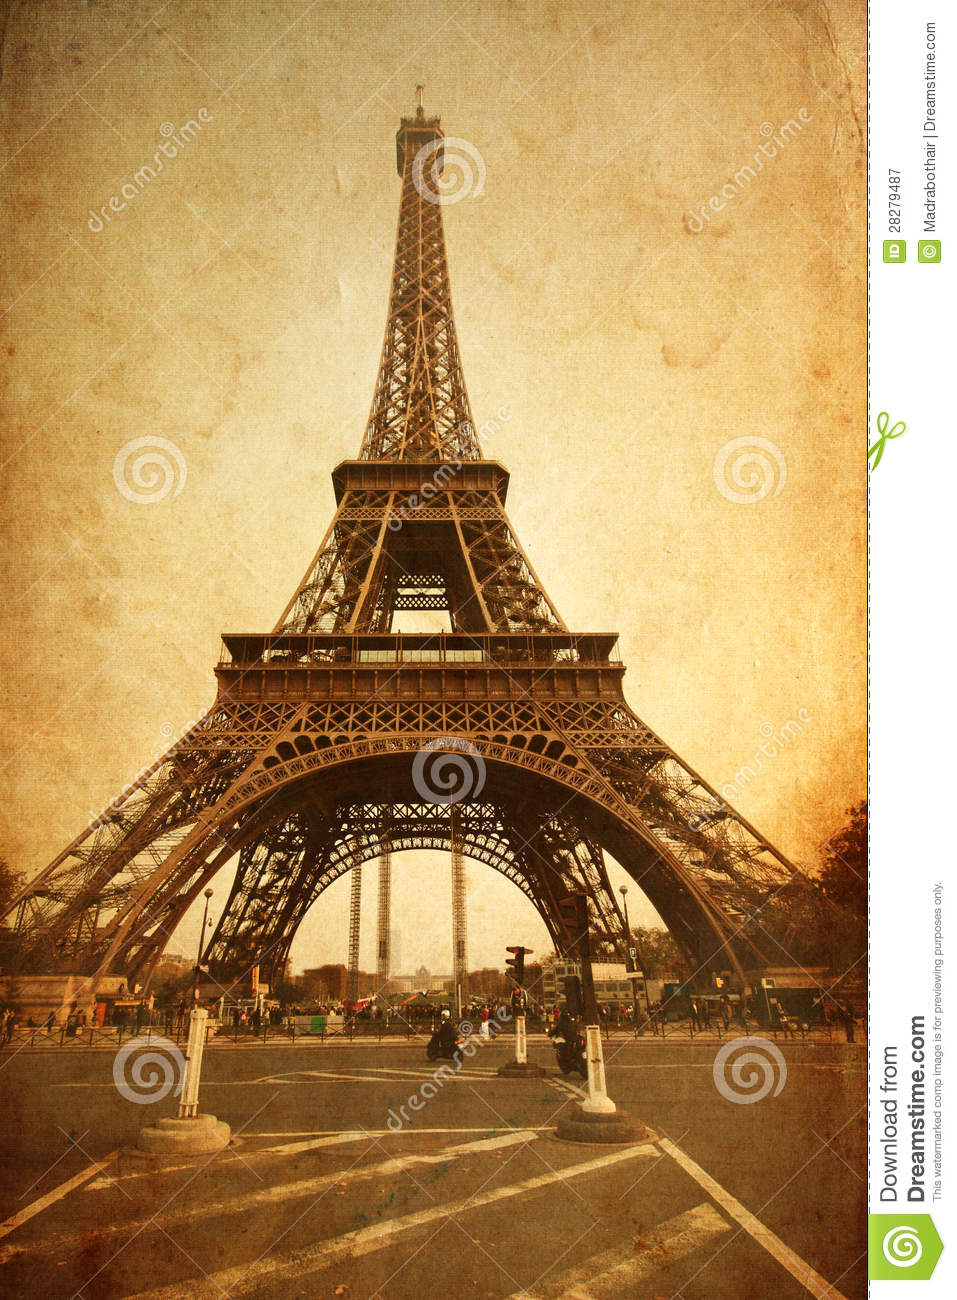 Eiffel Tower Textured With Old Paper Stock Illustration ...